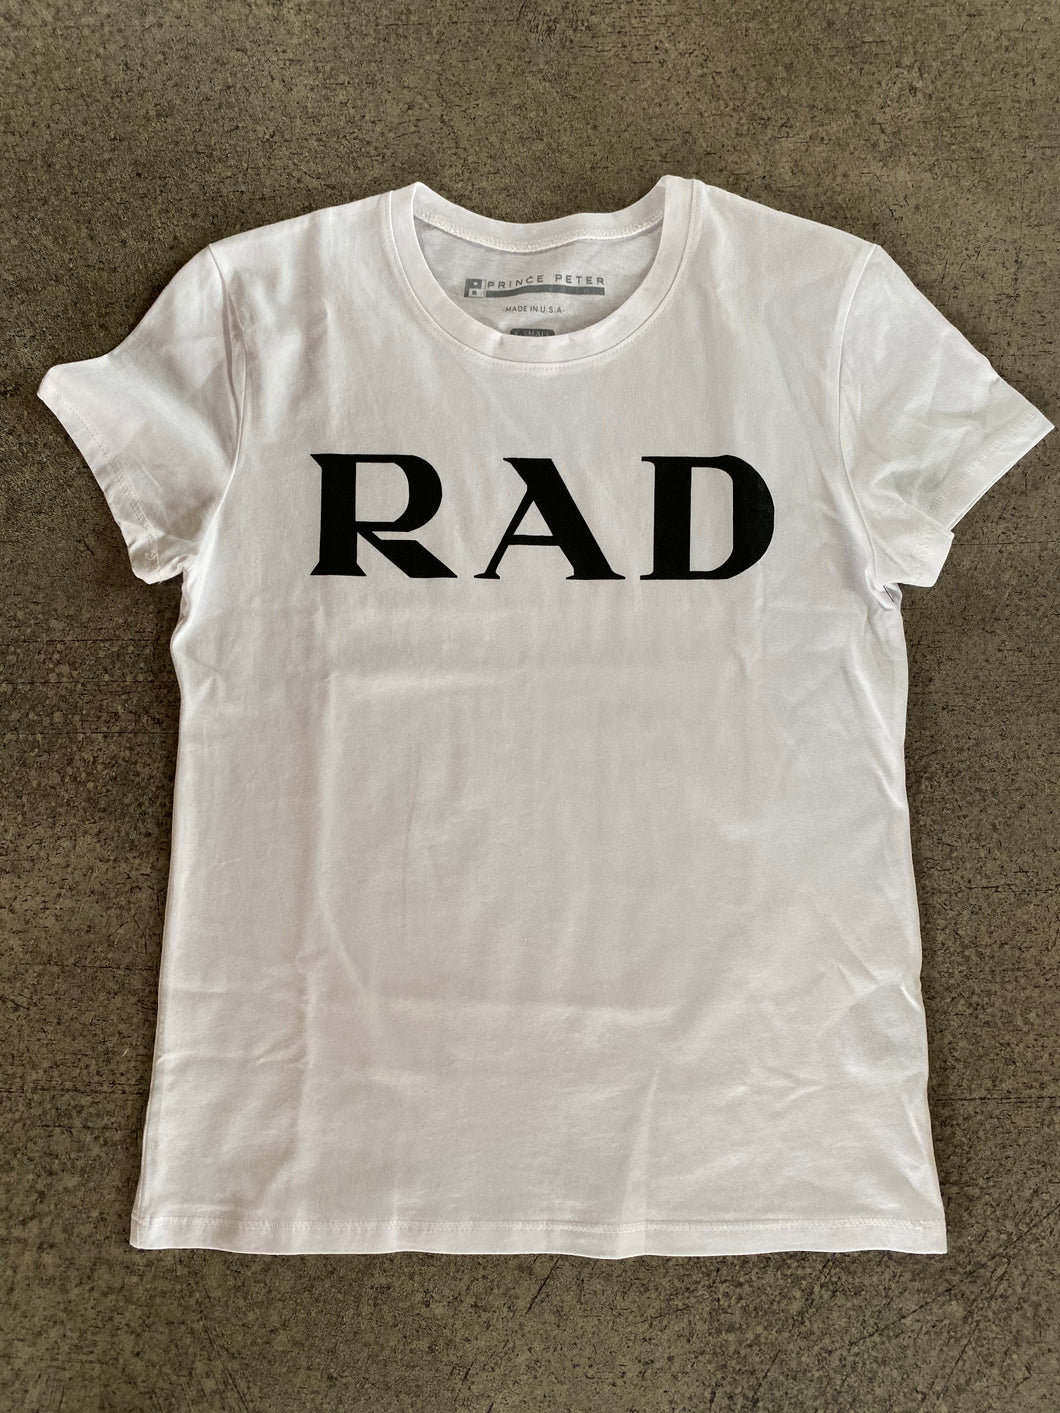 Prince Peter Rad Tee in White